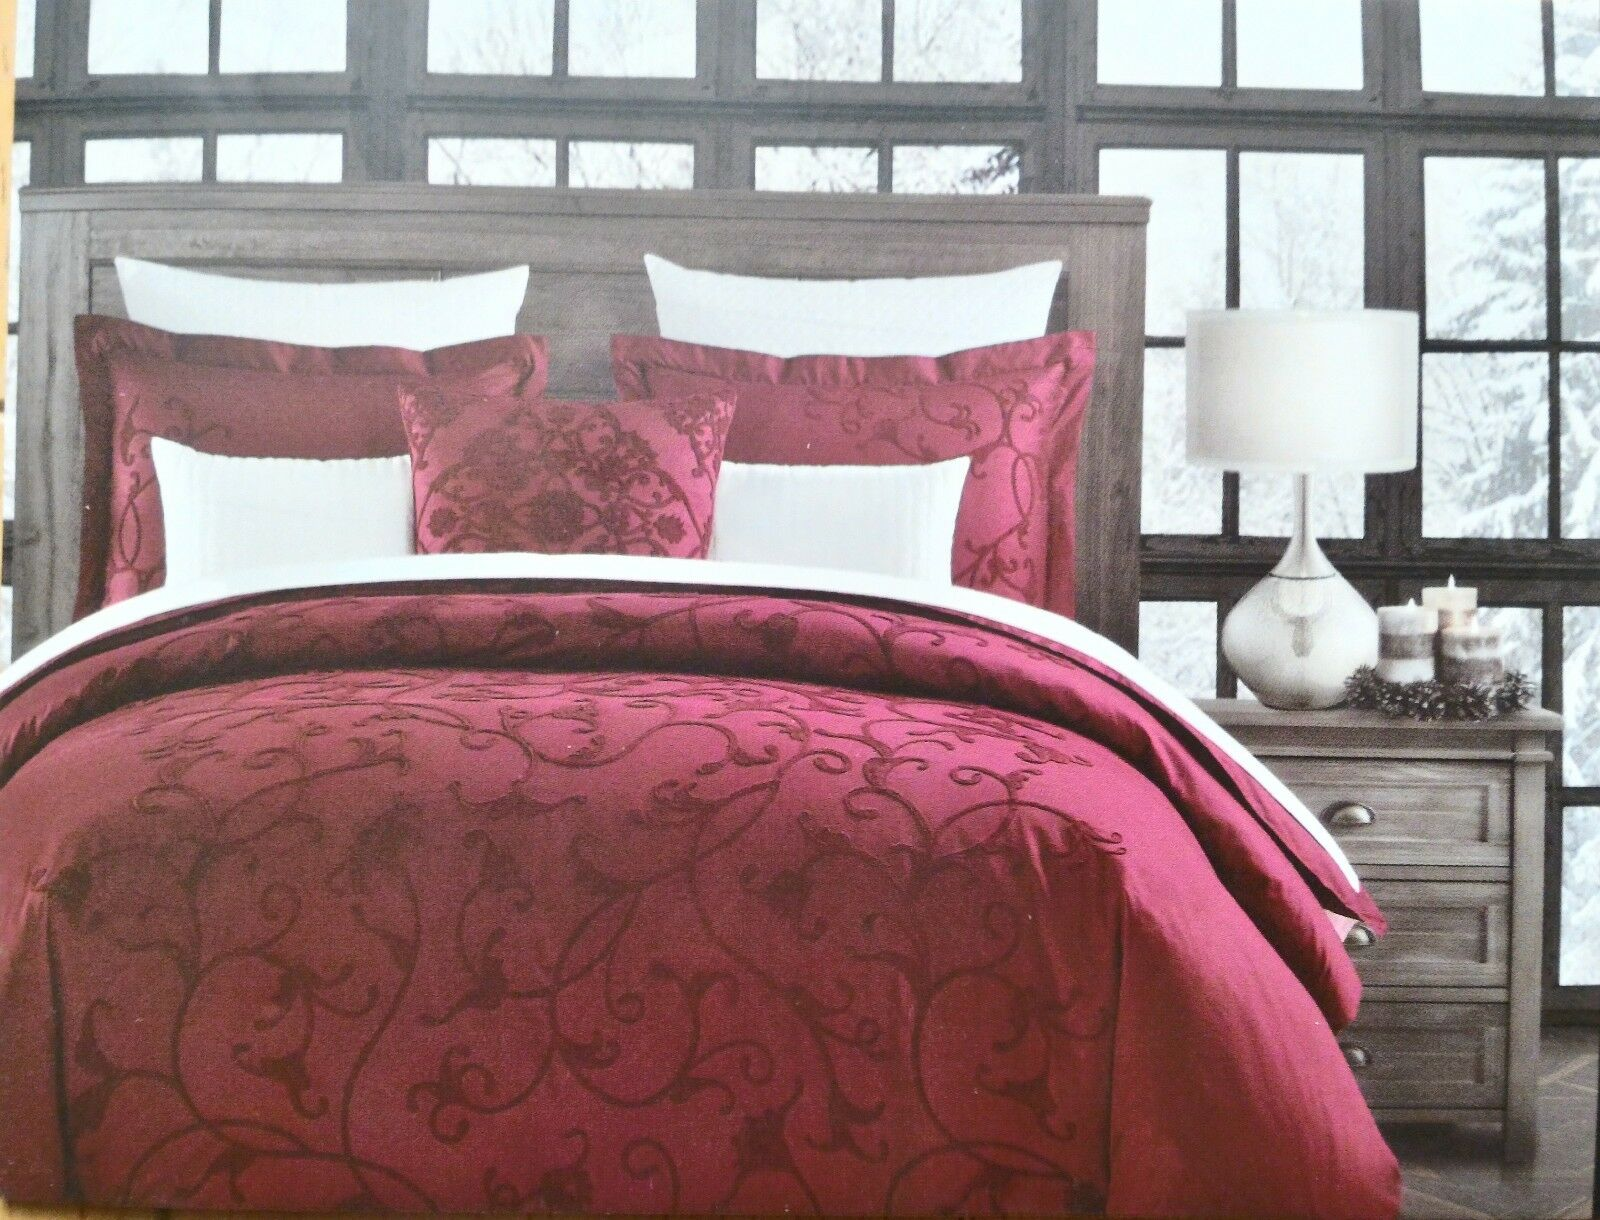 NEW Tahari Red Rich Embroidered 3 pcs QUEEN Duvet Cover Sham Bedding Set